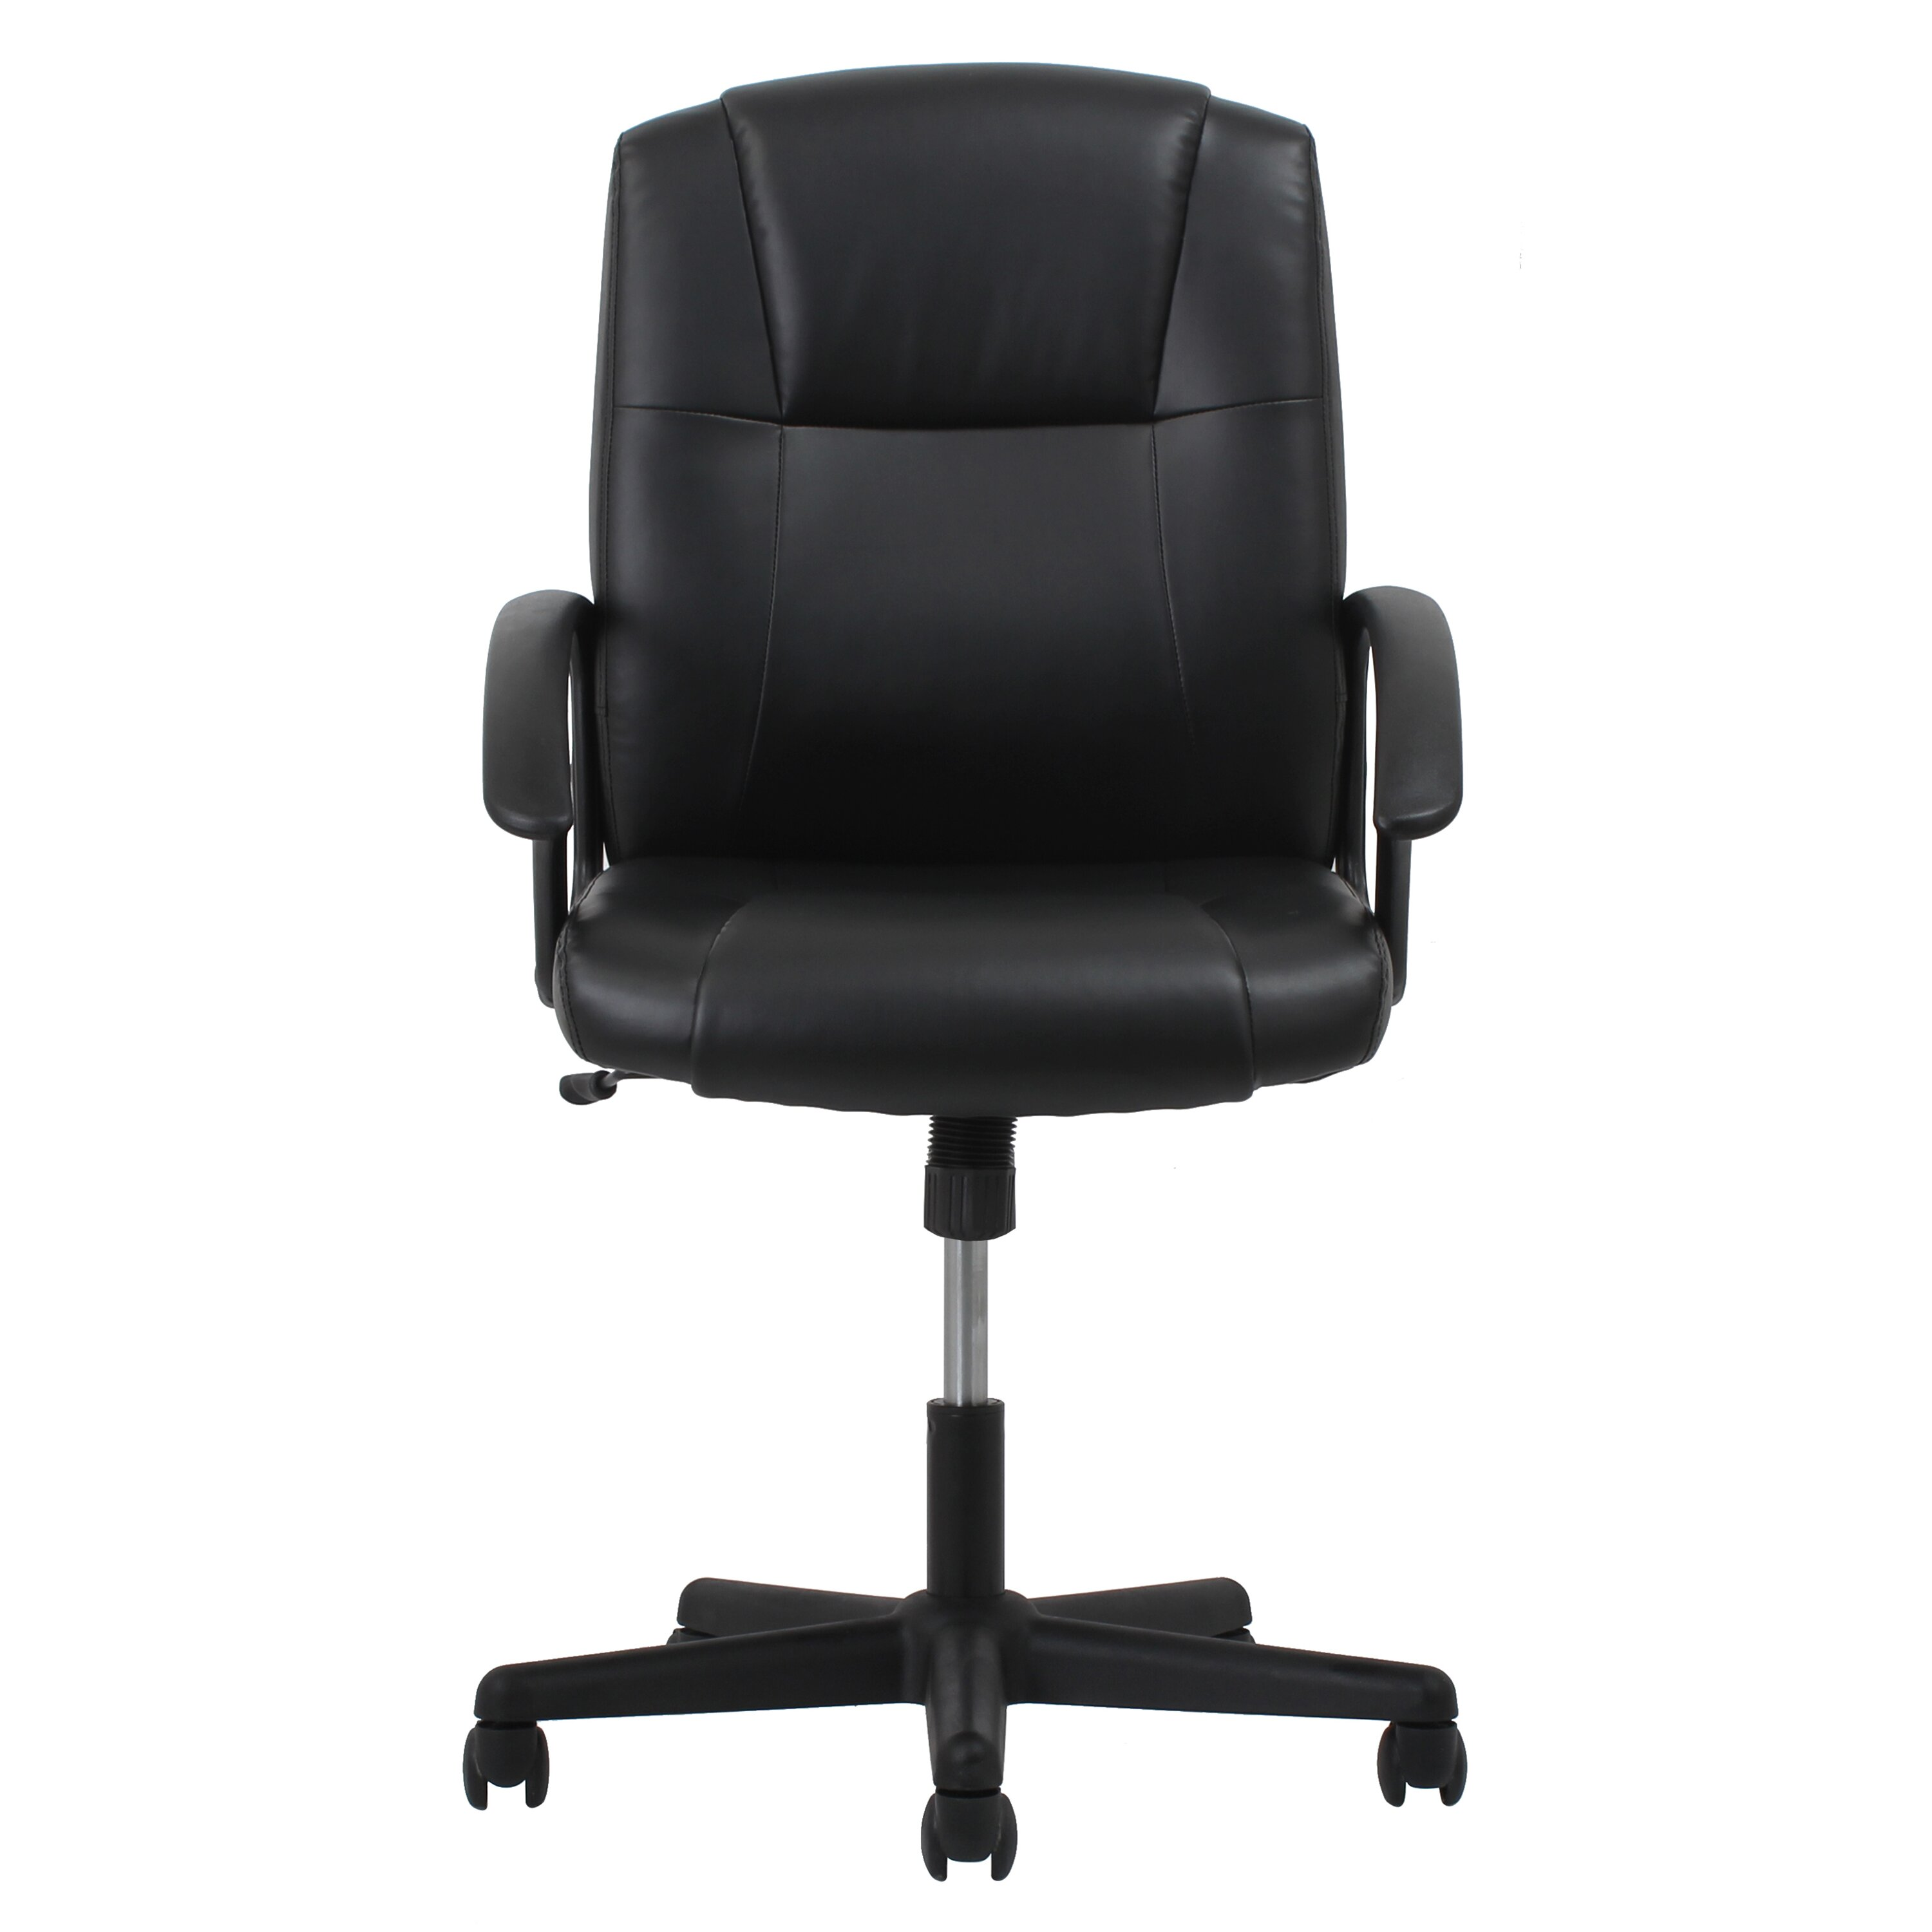 Ofm ergonomic leather executive office chair with arms for Office leather chair